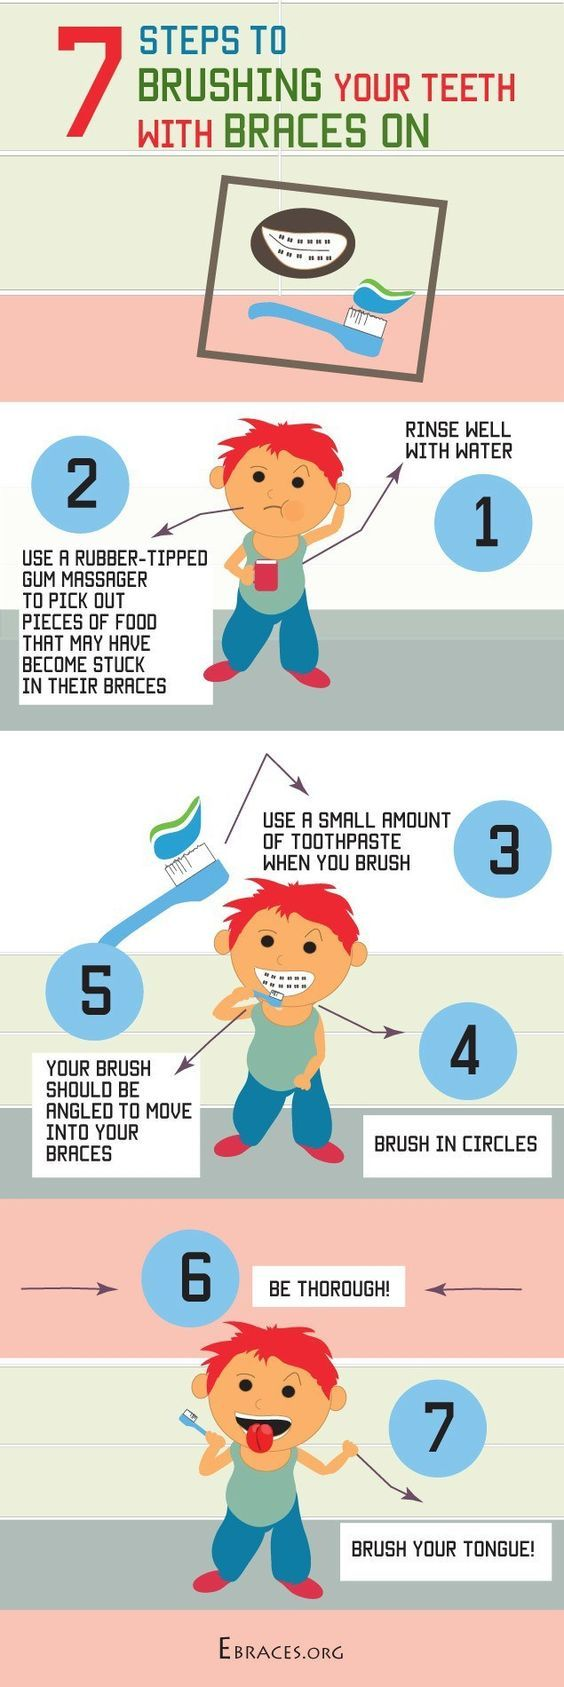 7 steps to brushing your teeth with braces on dental